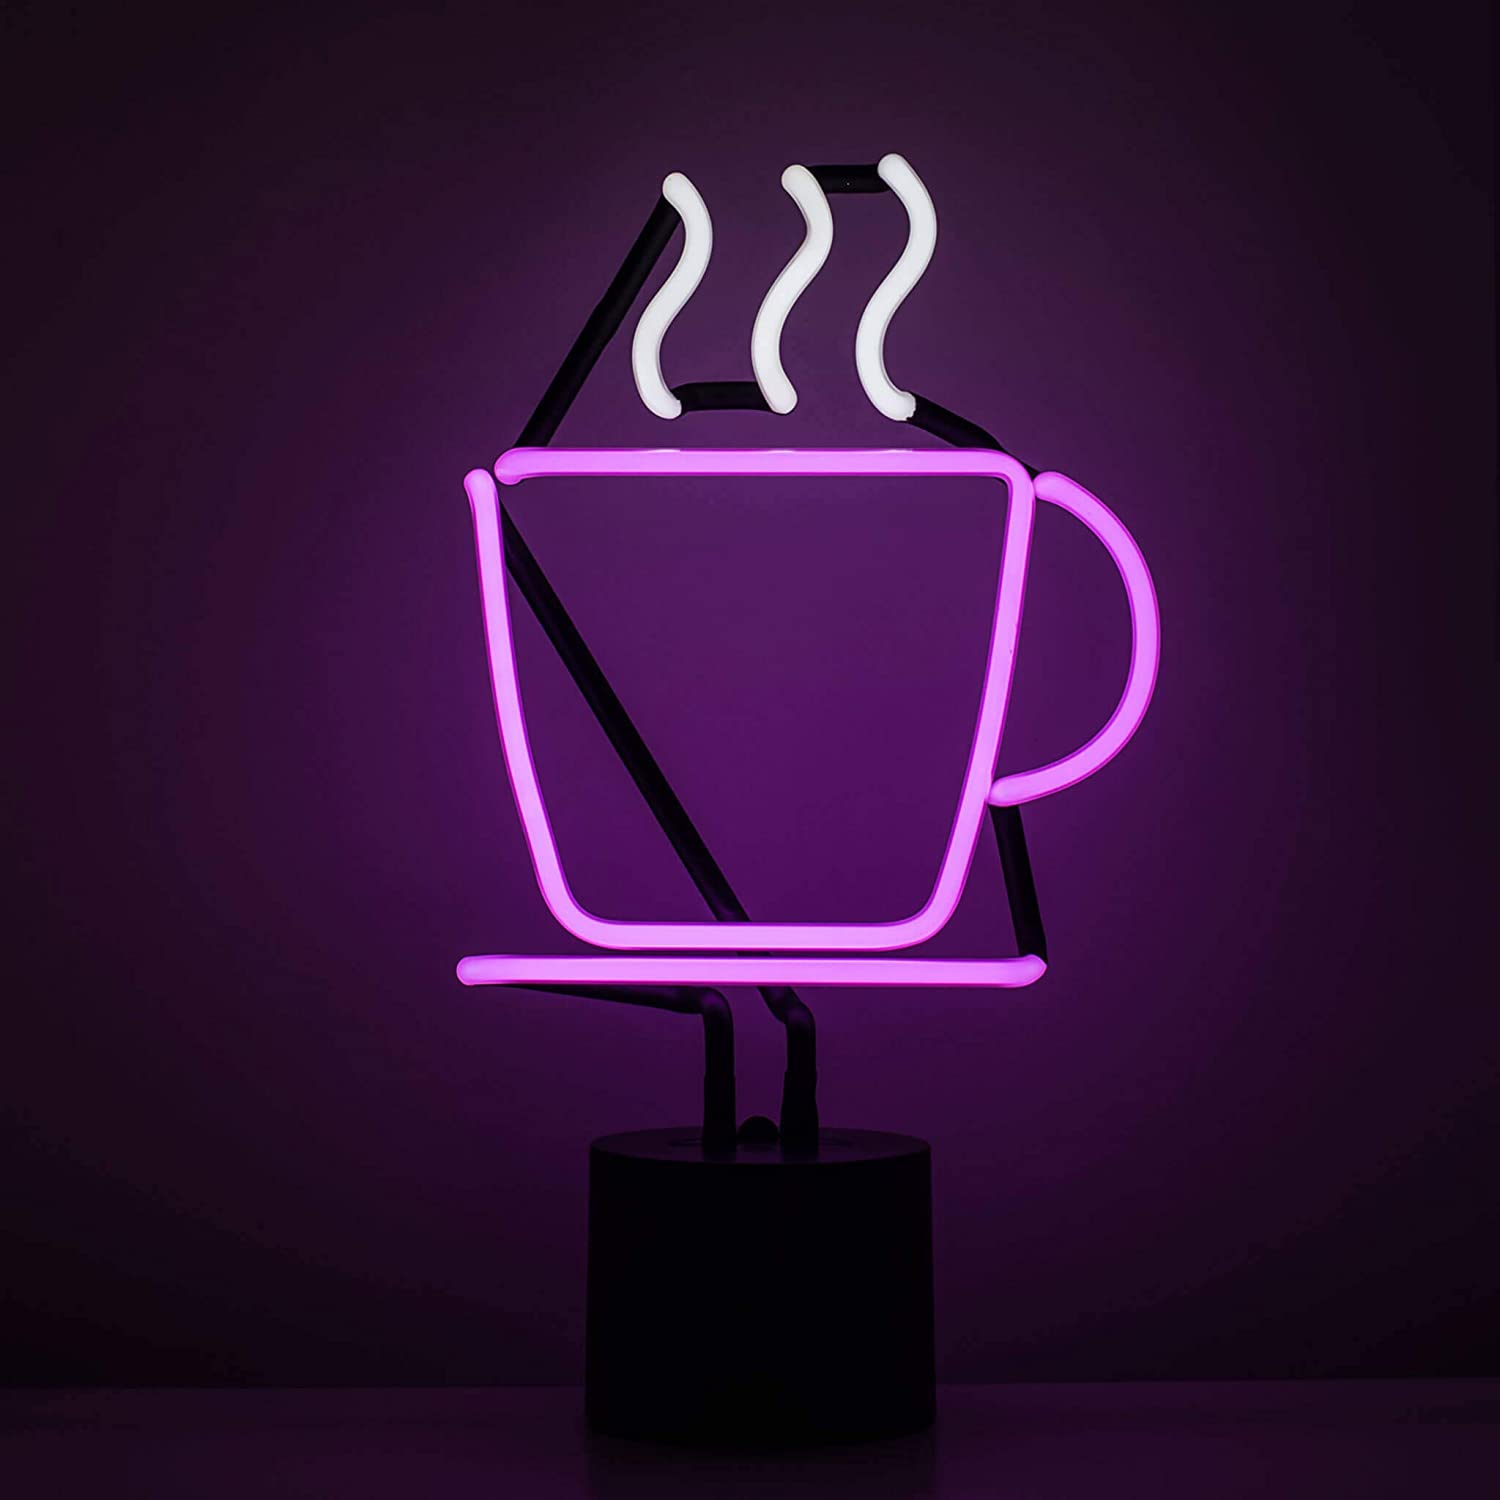 Amped & Co Coffee Cup Neon Table Light, Real Neon Cafe Sign, Purple with White Steam, Large 14 x 8 inches, Home Decor Signs for Unique Rooms